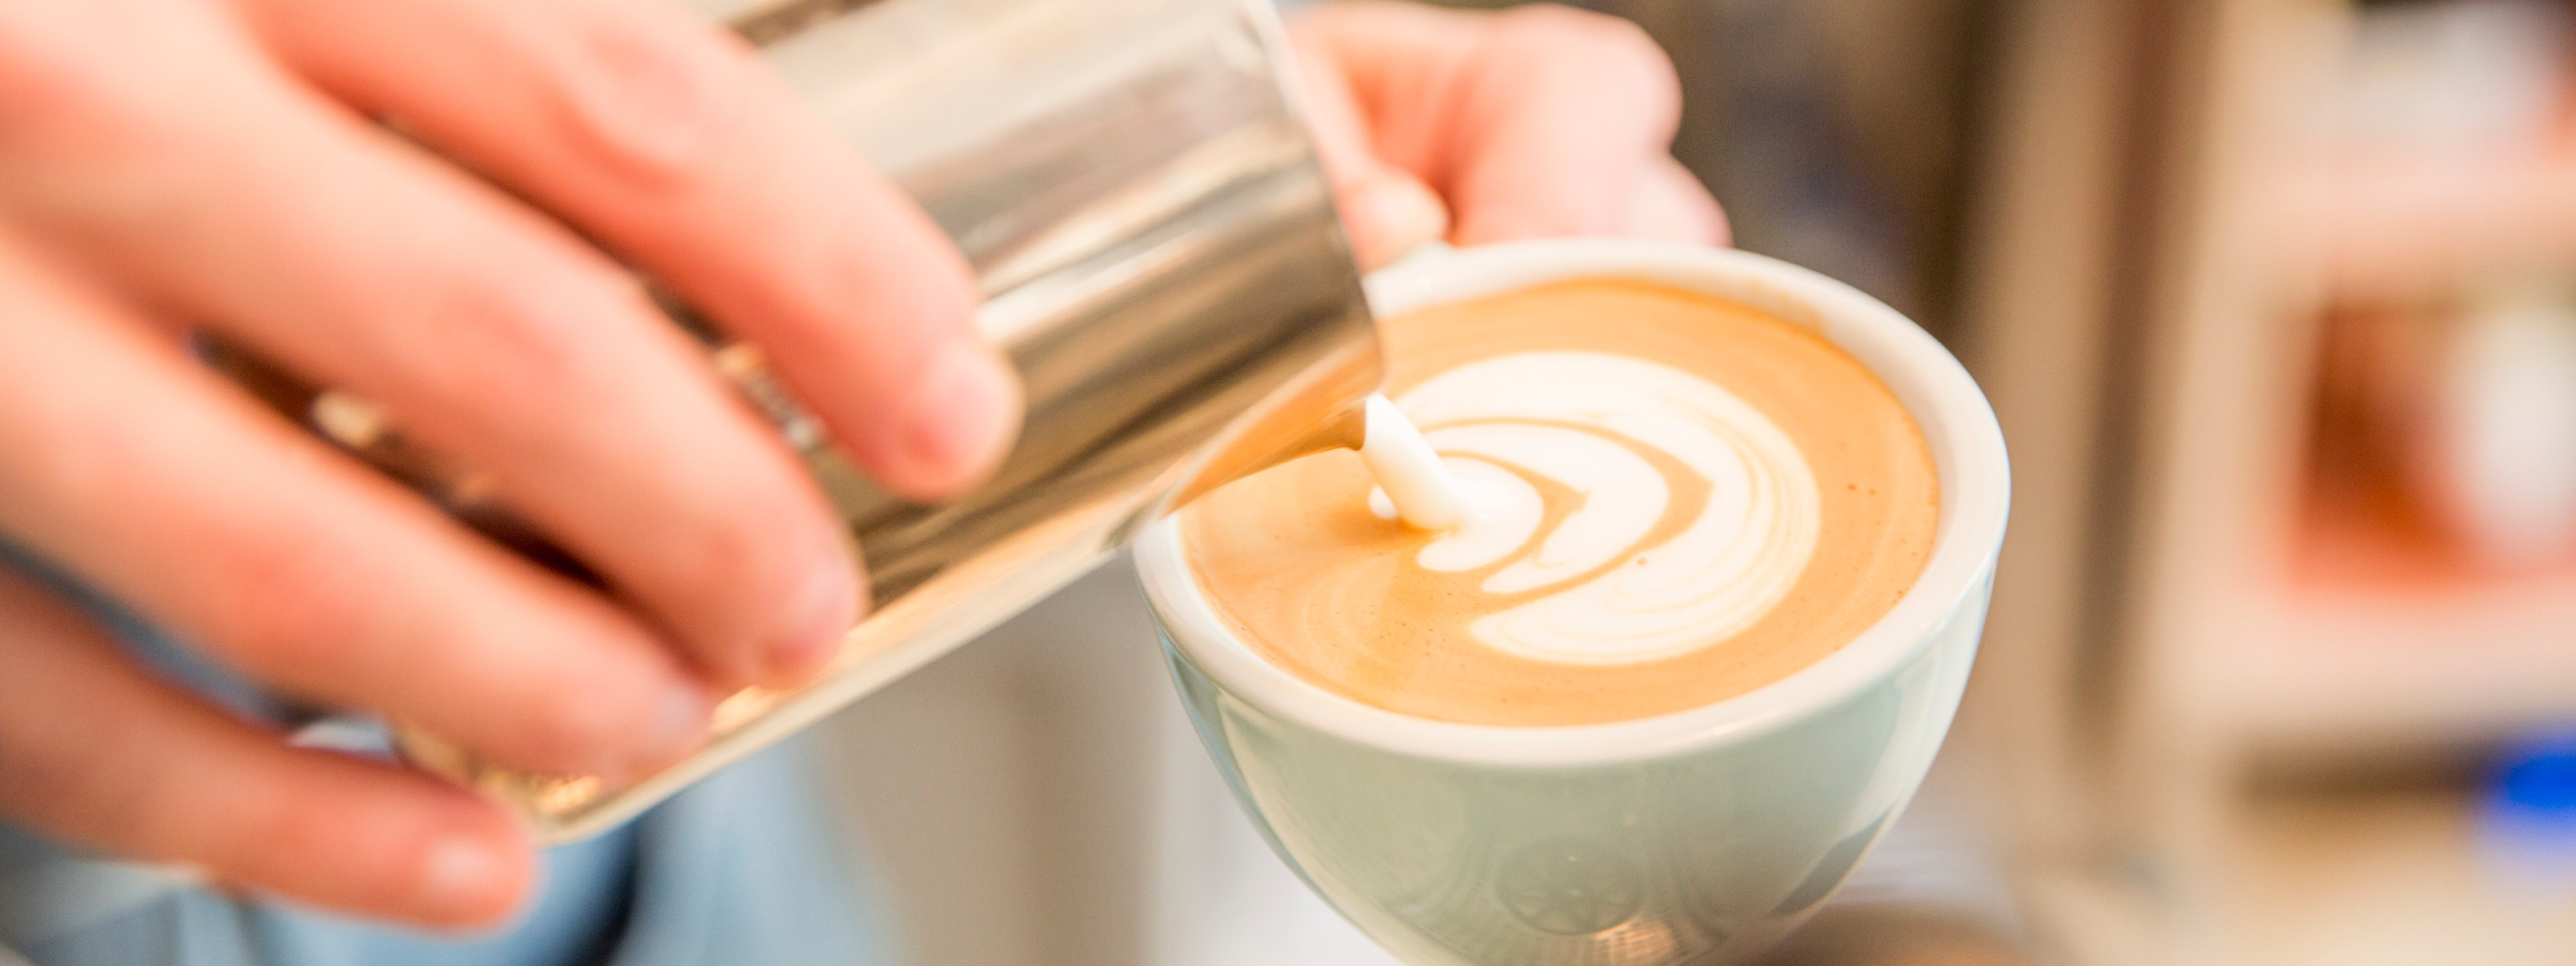 The London Coffee Delivery And Takeaway Guide - London - The Infatuation